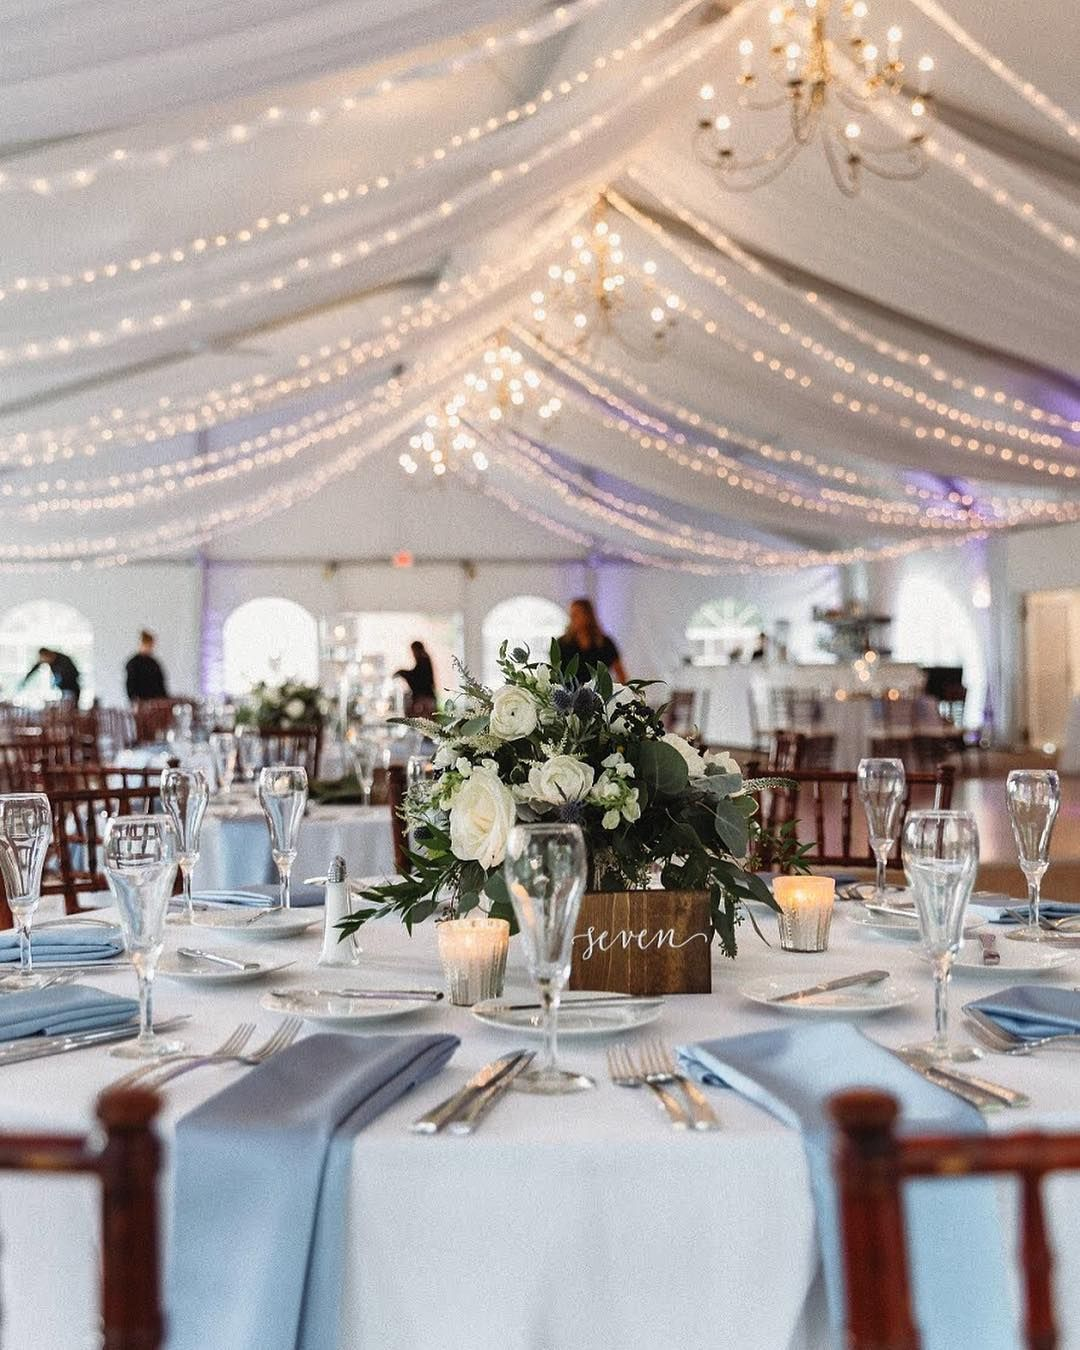 Misselwood Events On Instagram Counting Down To When We Get To See The Tent Decor For This Year Tenttuesday Tent Decorations Misselwood Weddings Tent